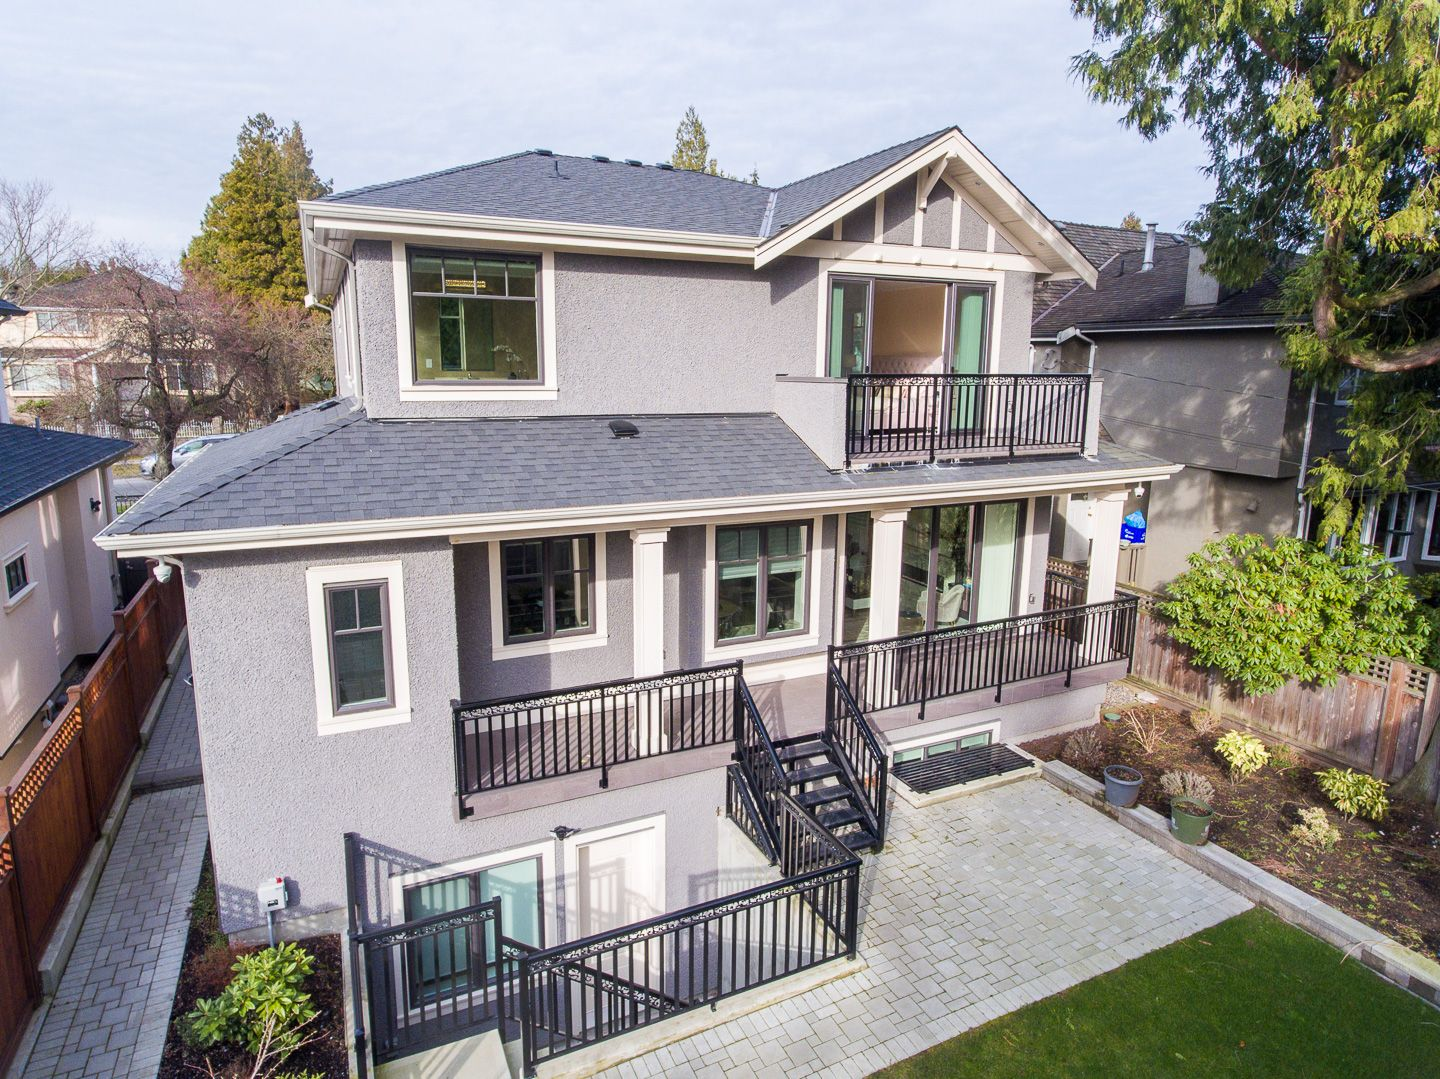 Photo 41: Photos: 1744 WEST 61ST AVE in VANCOUVER: South Granville House for sale (Vancouver West)  : MLS®# R2546980